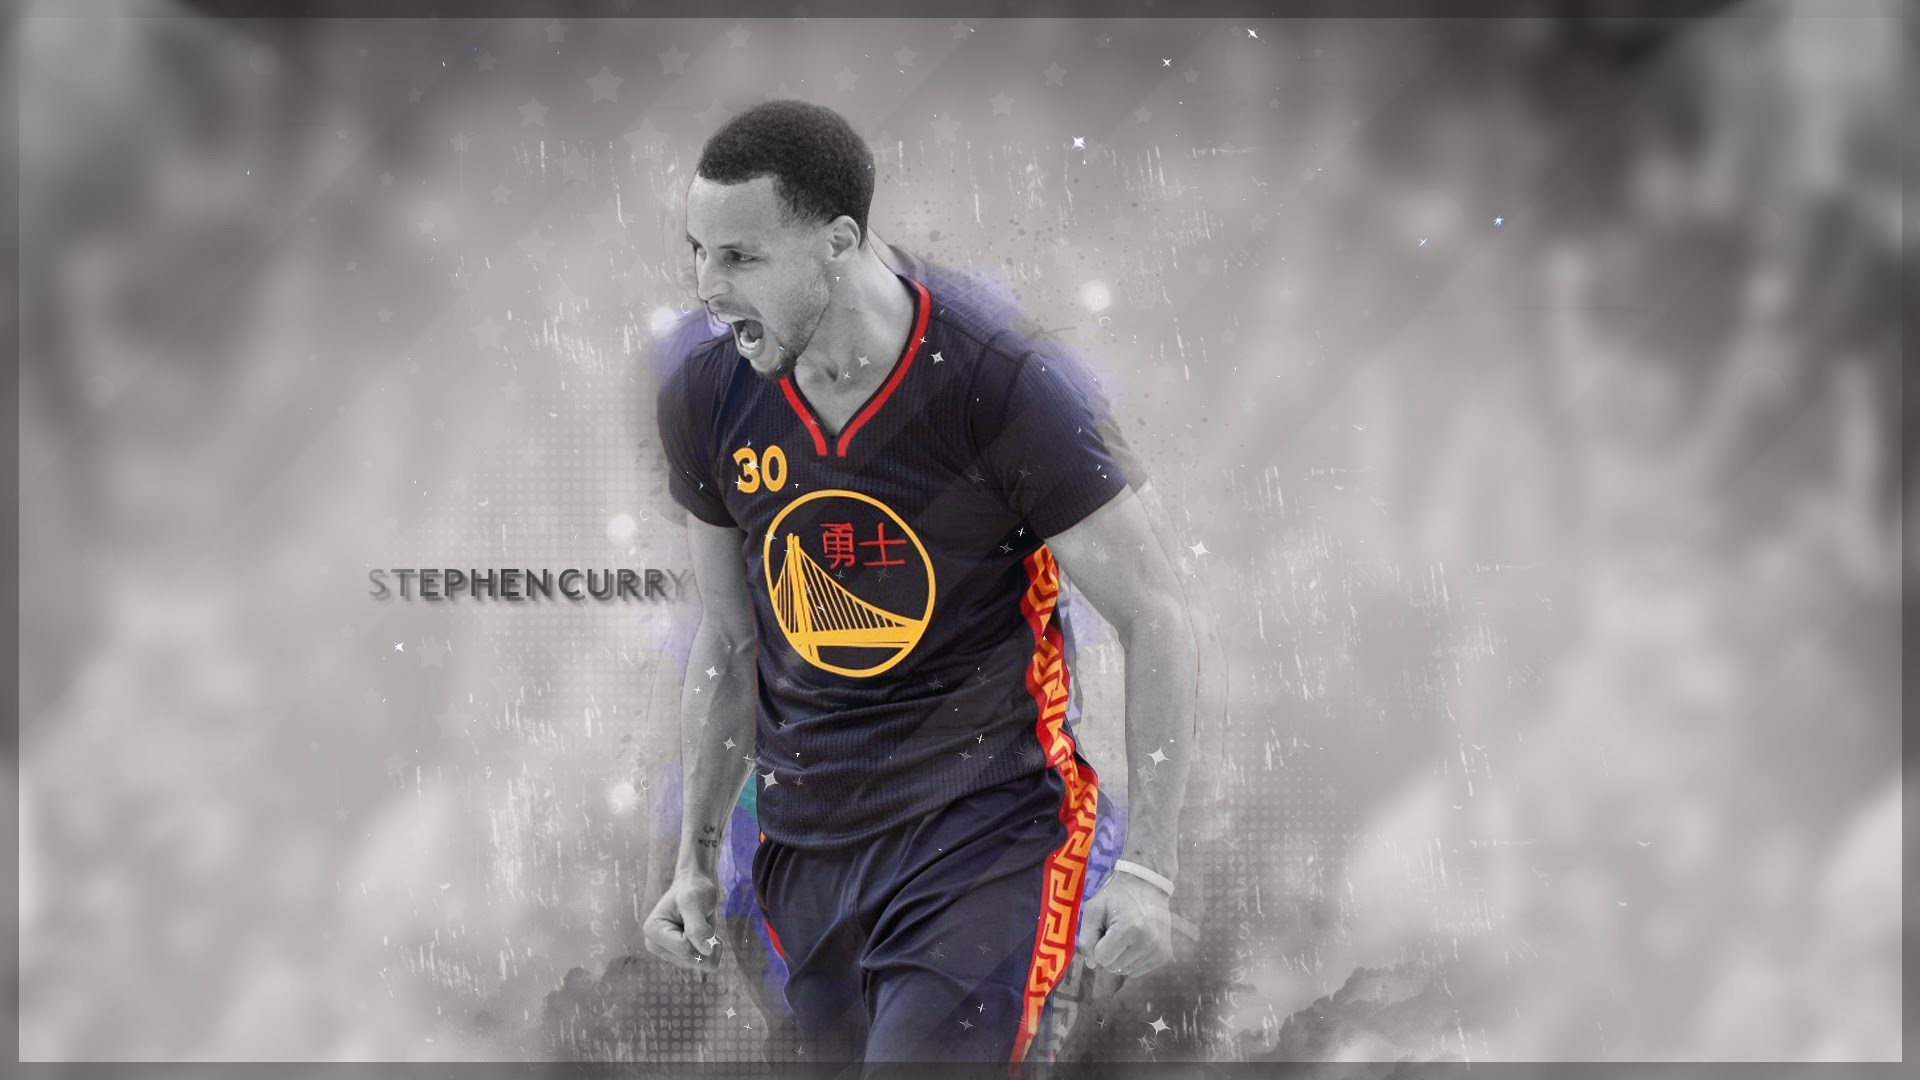 1920x1080 Stephen Curry Wallpapers - Wallpaper Cave | curry | Pinterest .